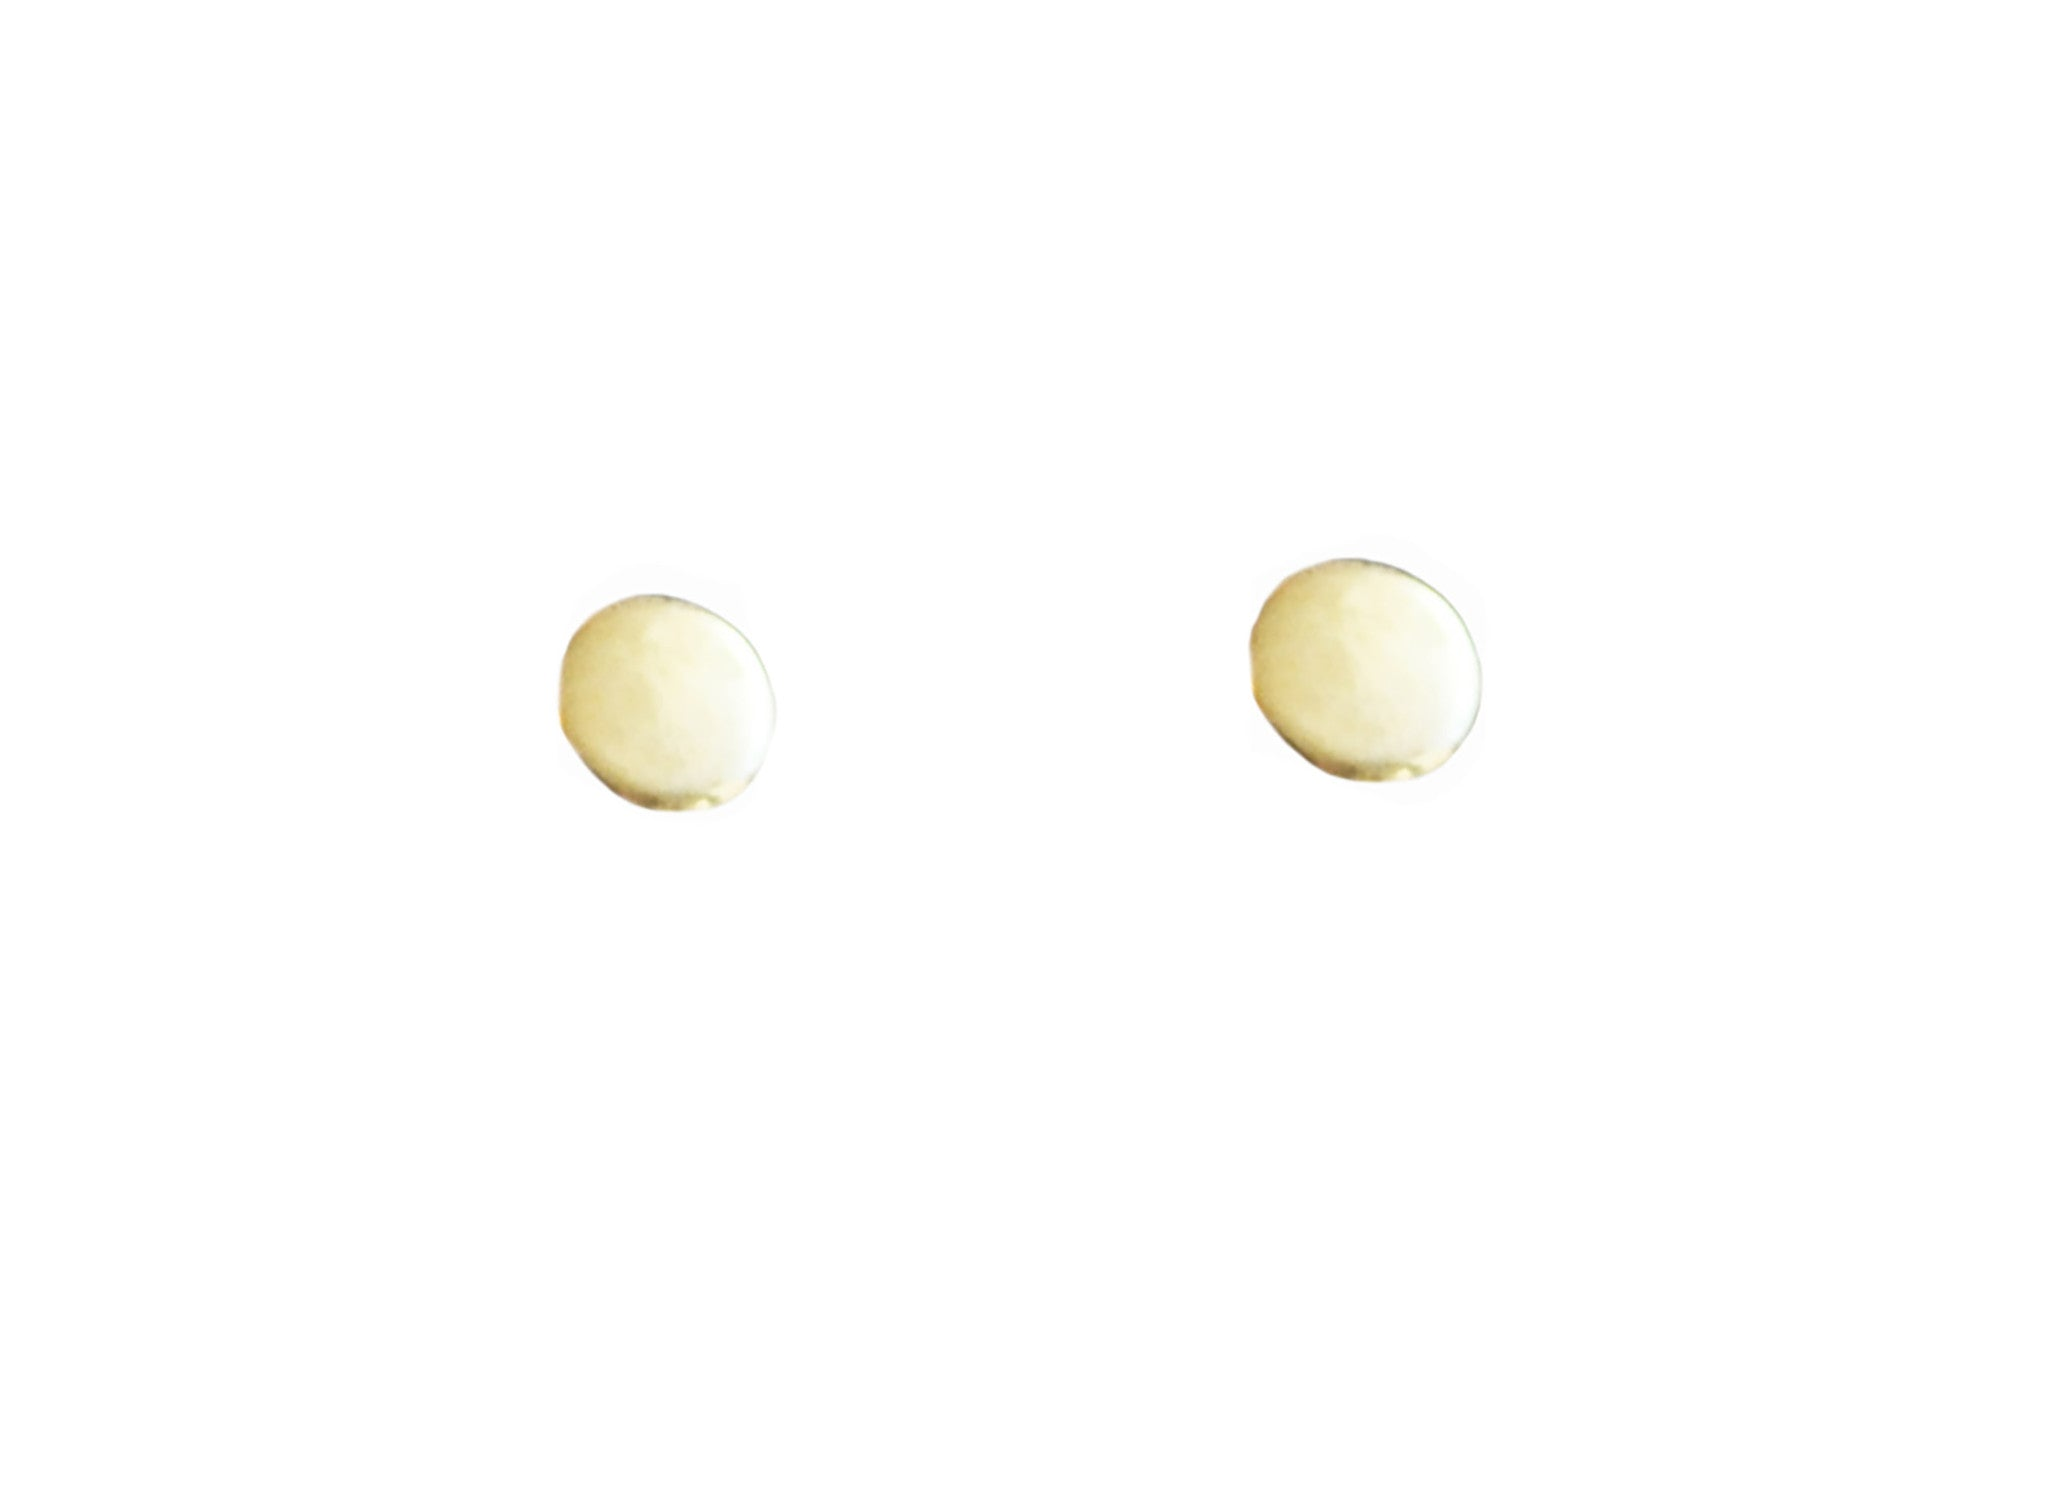 Circle Shape Stud Earrings Wendy Nichol Fine Jewelry Designer 14k Gold Sterling Silver Simple delicate Geometric studs